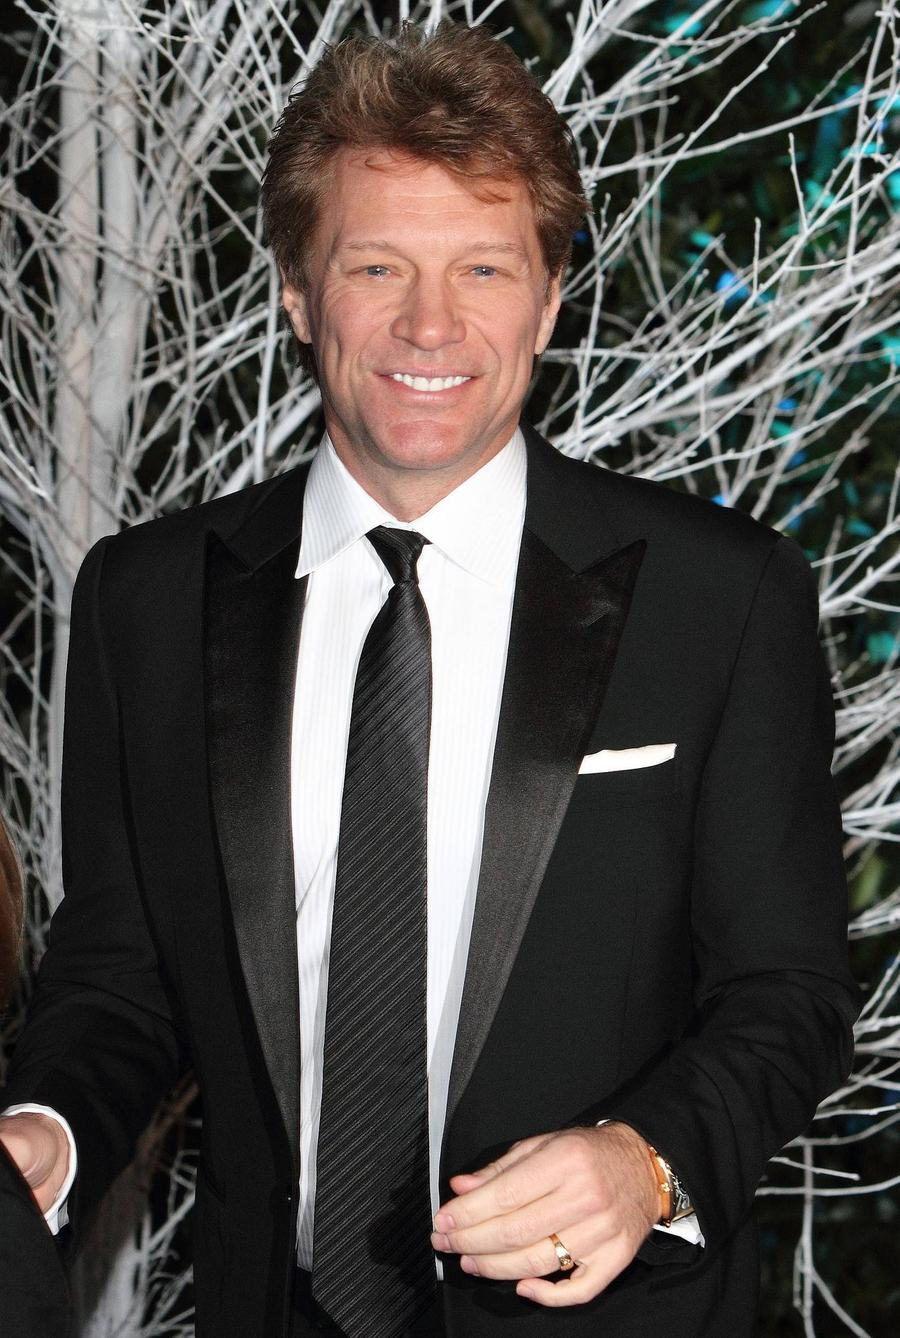 Jon Bon Jovi Launches Second Charity Restaurant